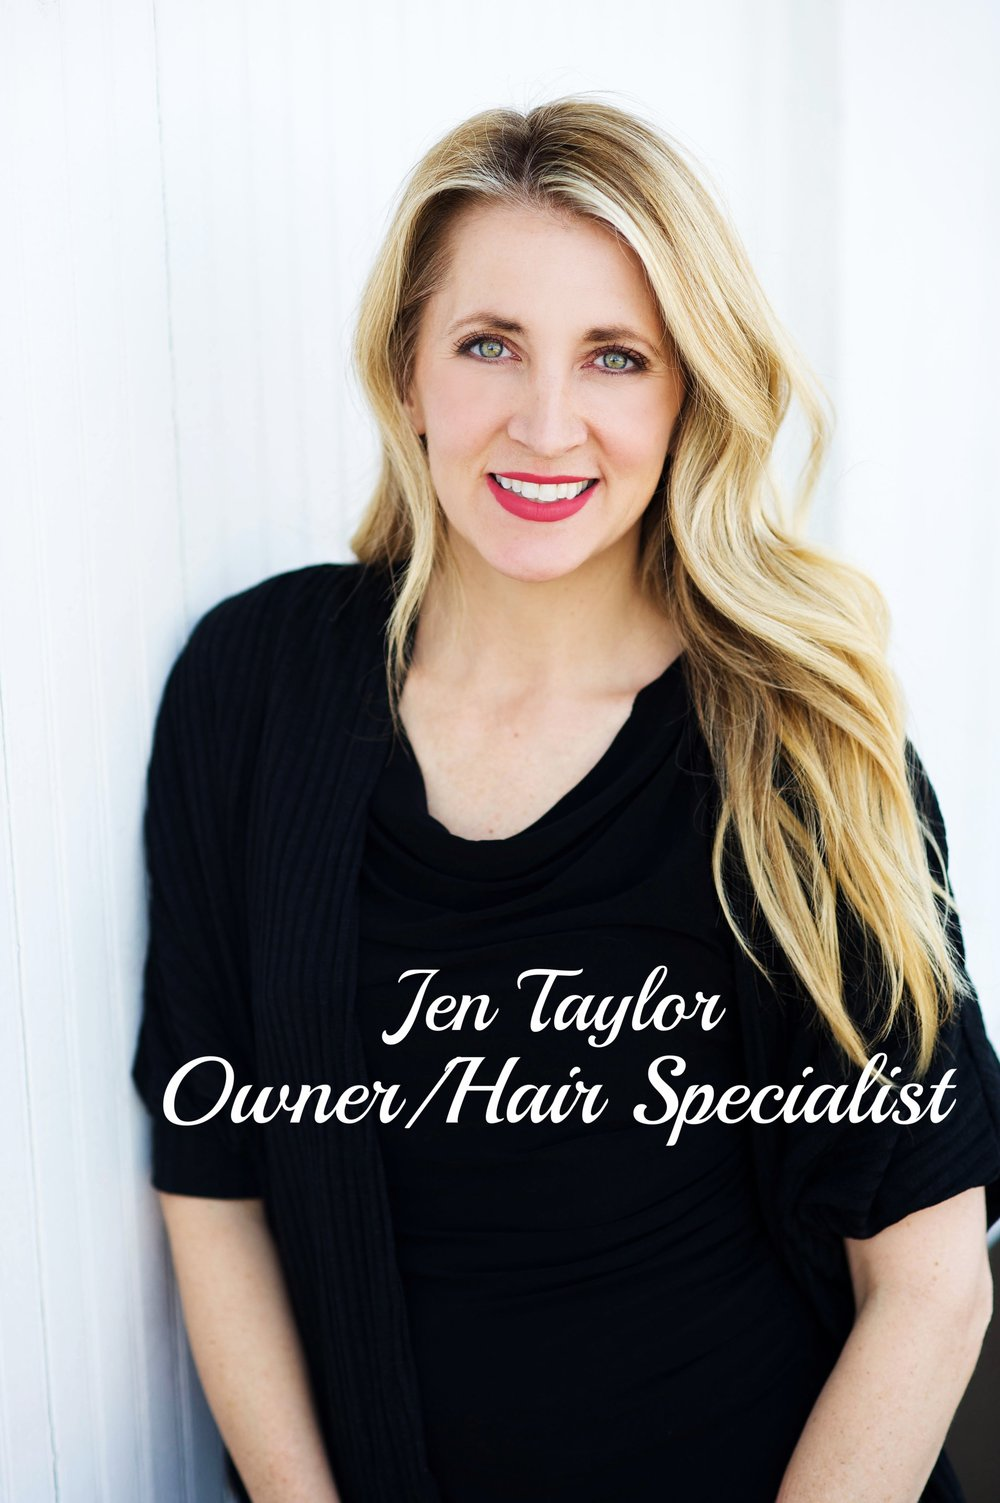 Jenny Taylor - Owner/Hair Specialist